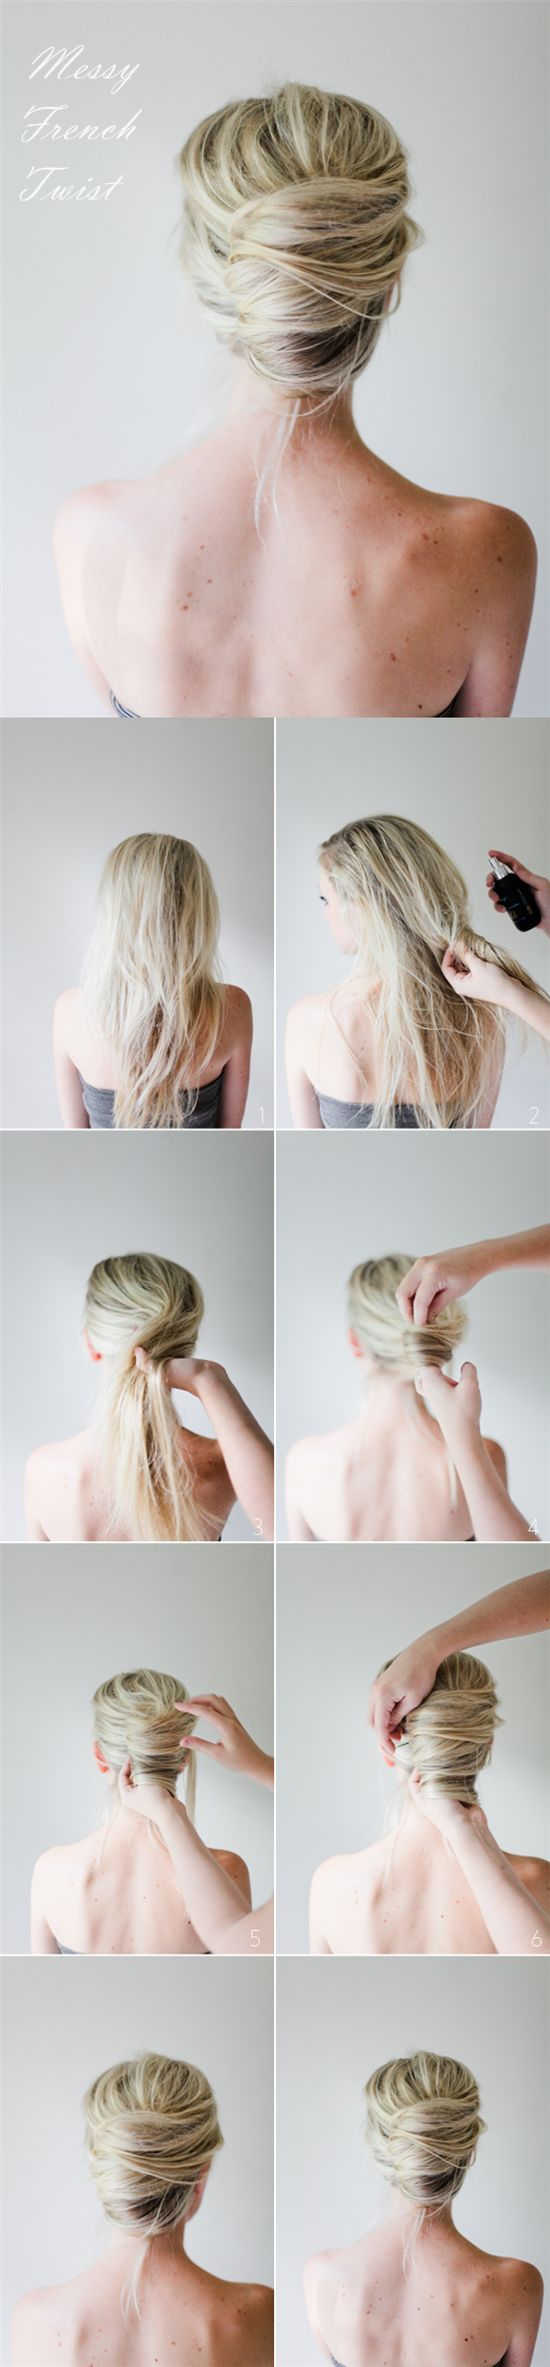 messy french twist style for girls with clip in hair extensions